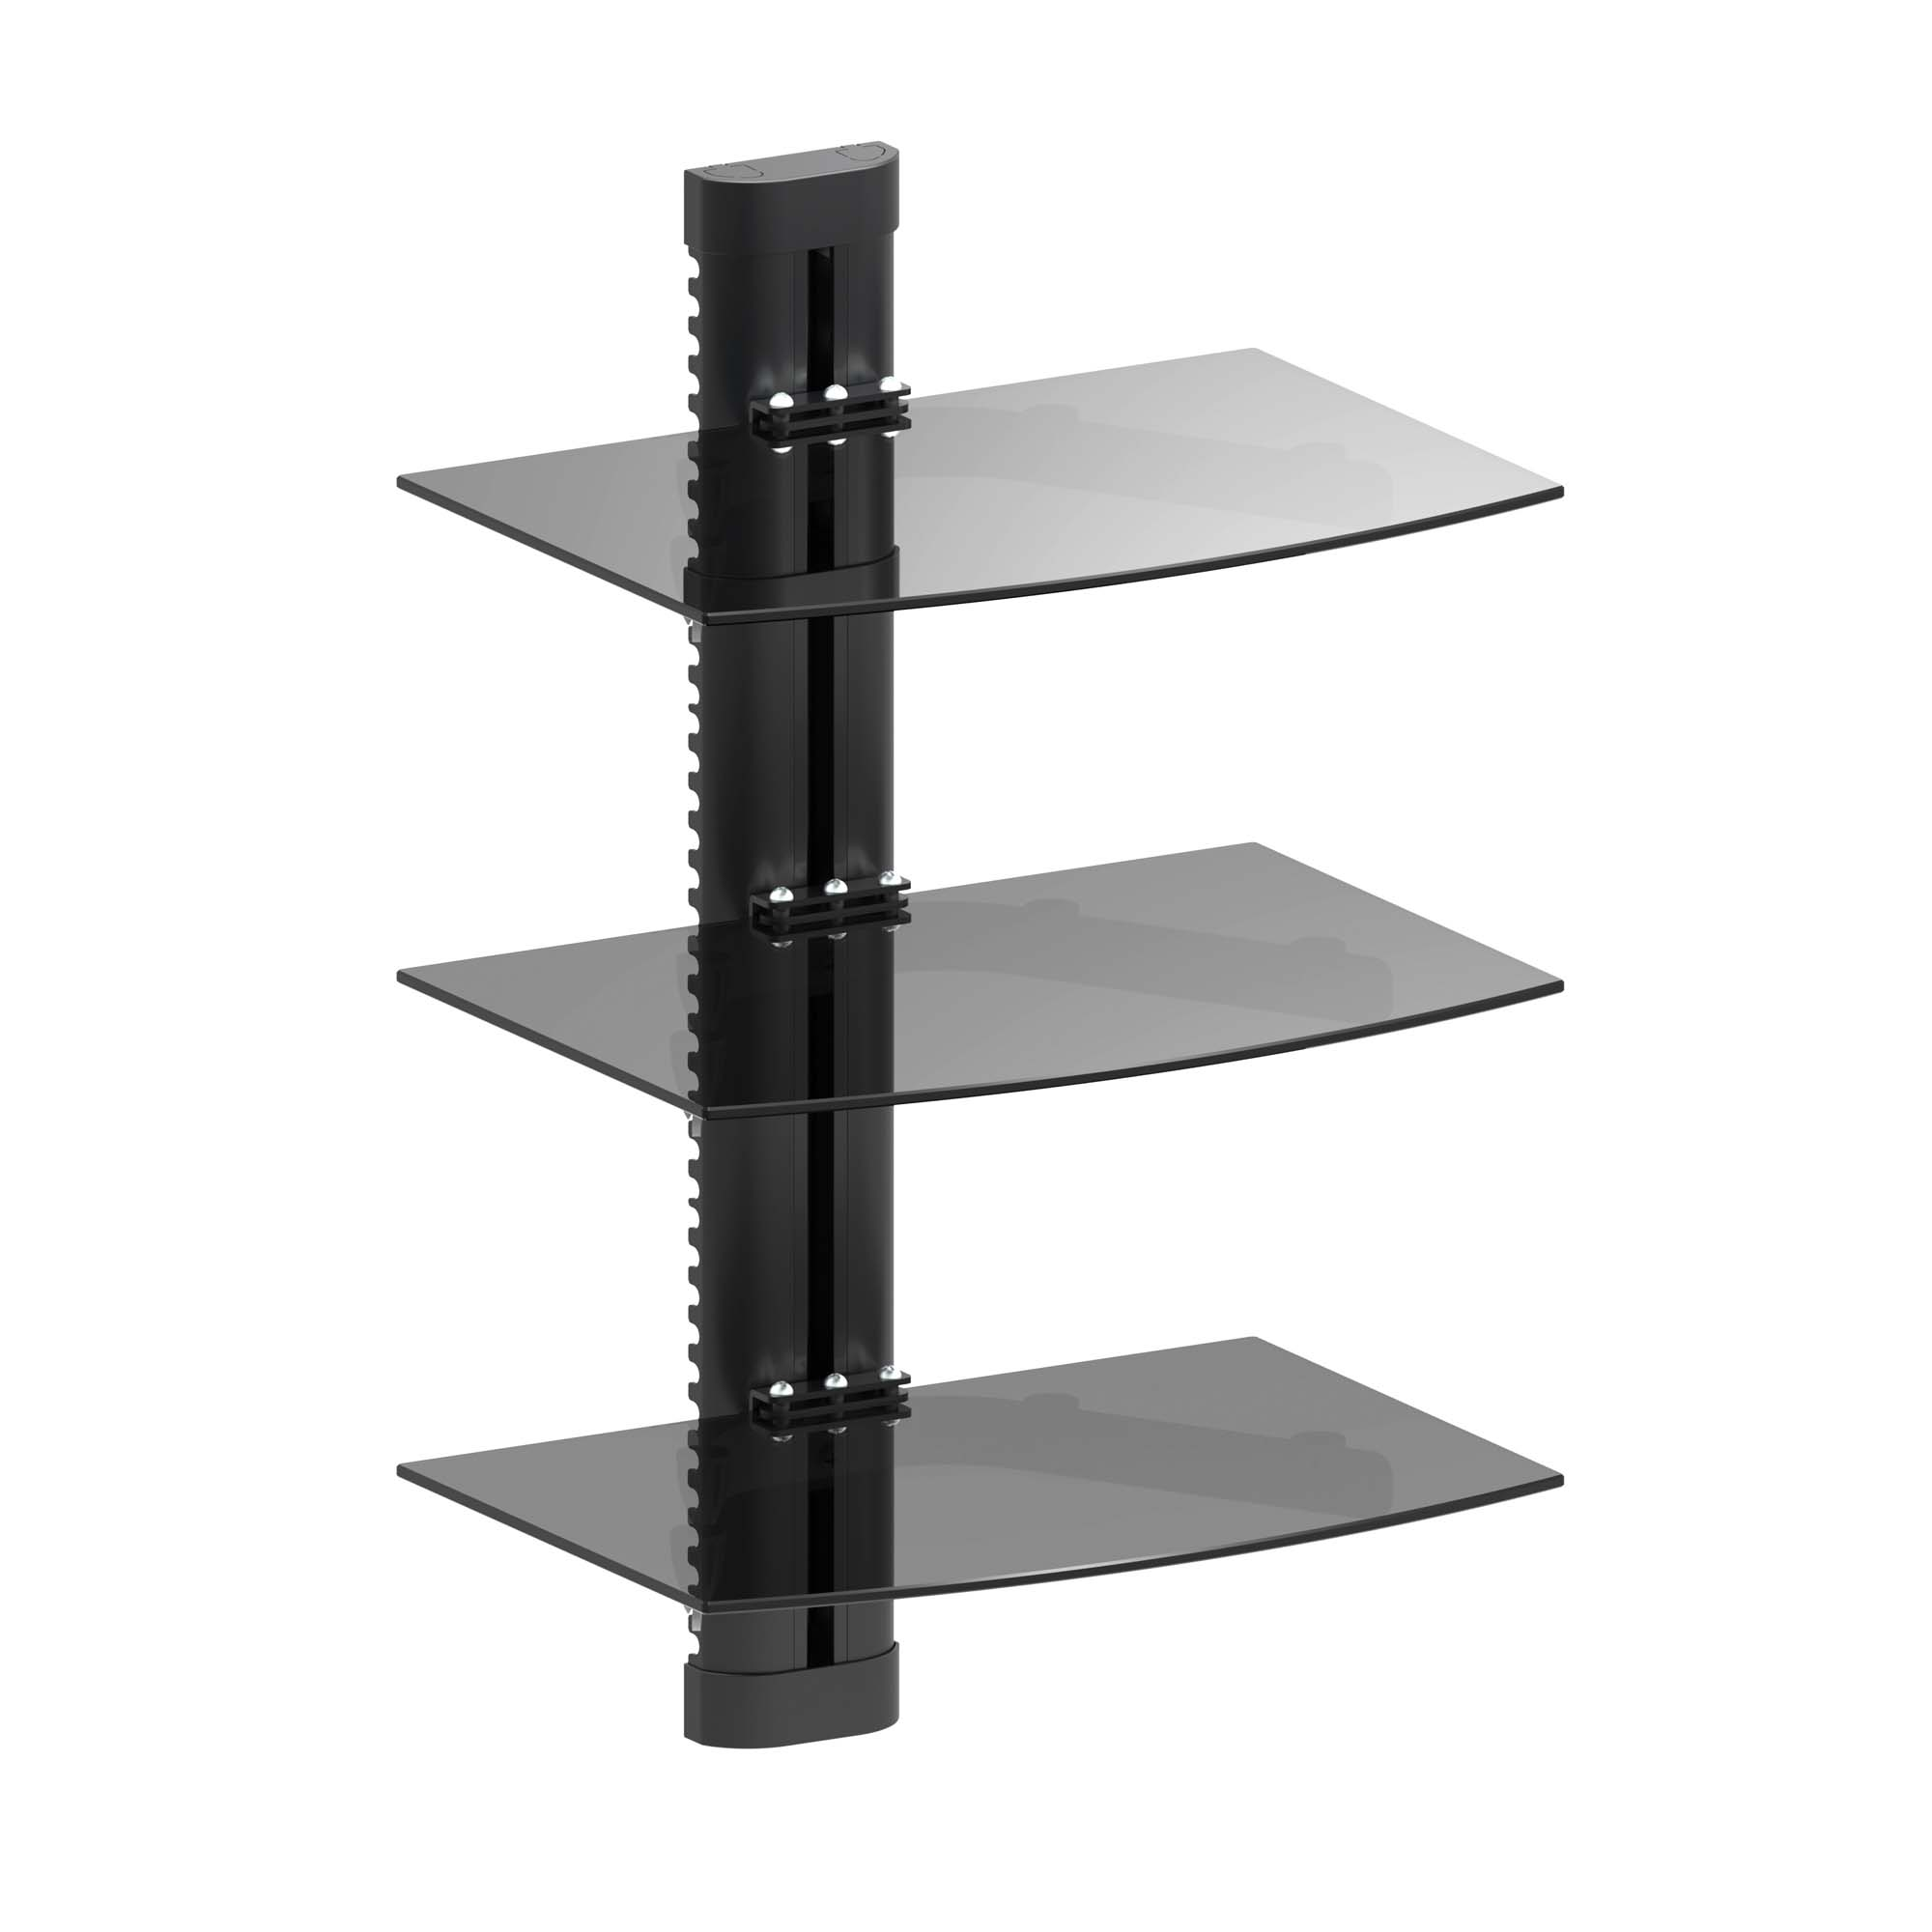 INLAND PRODUCTS ProHT 05441 Triple Shelf AV Components Wall Mount - Black PartNumber: 05741750000P KsnValue: 9079503 MfgPartNumber: 4INL05441